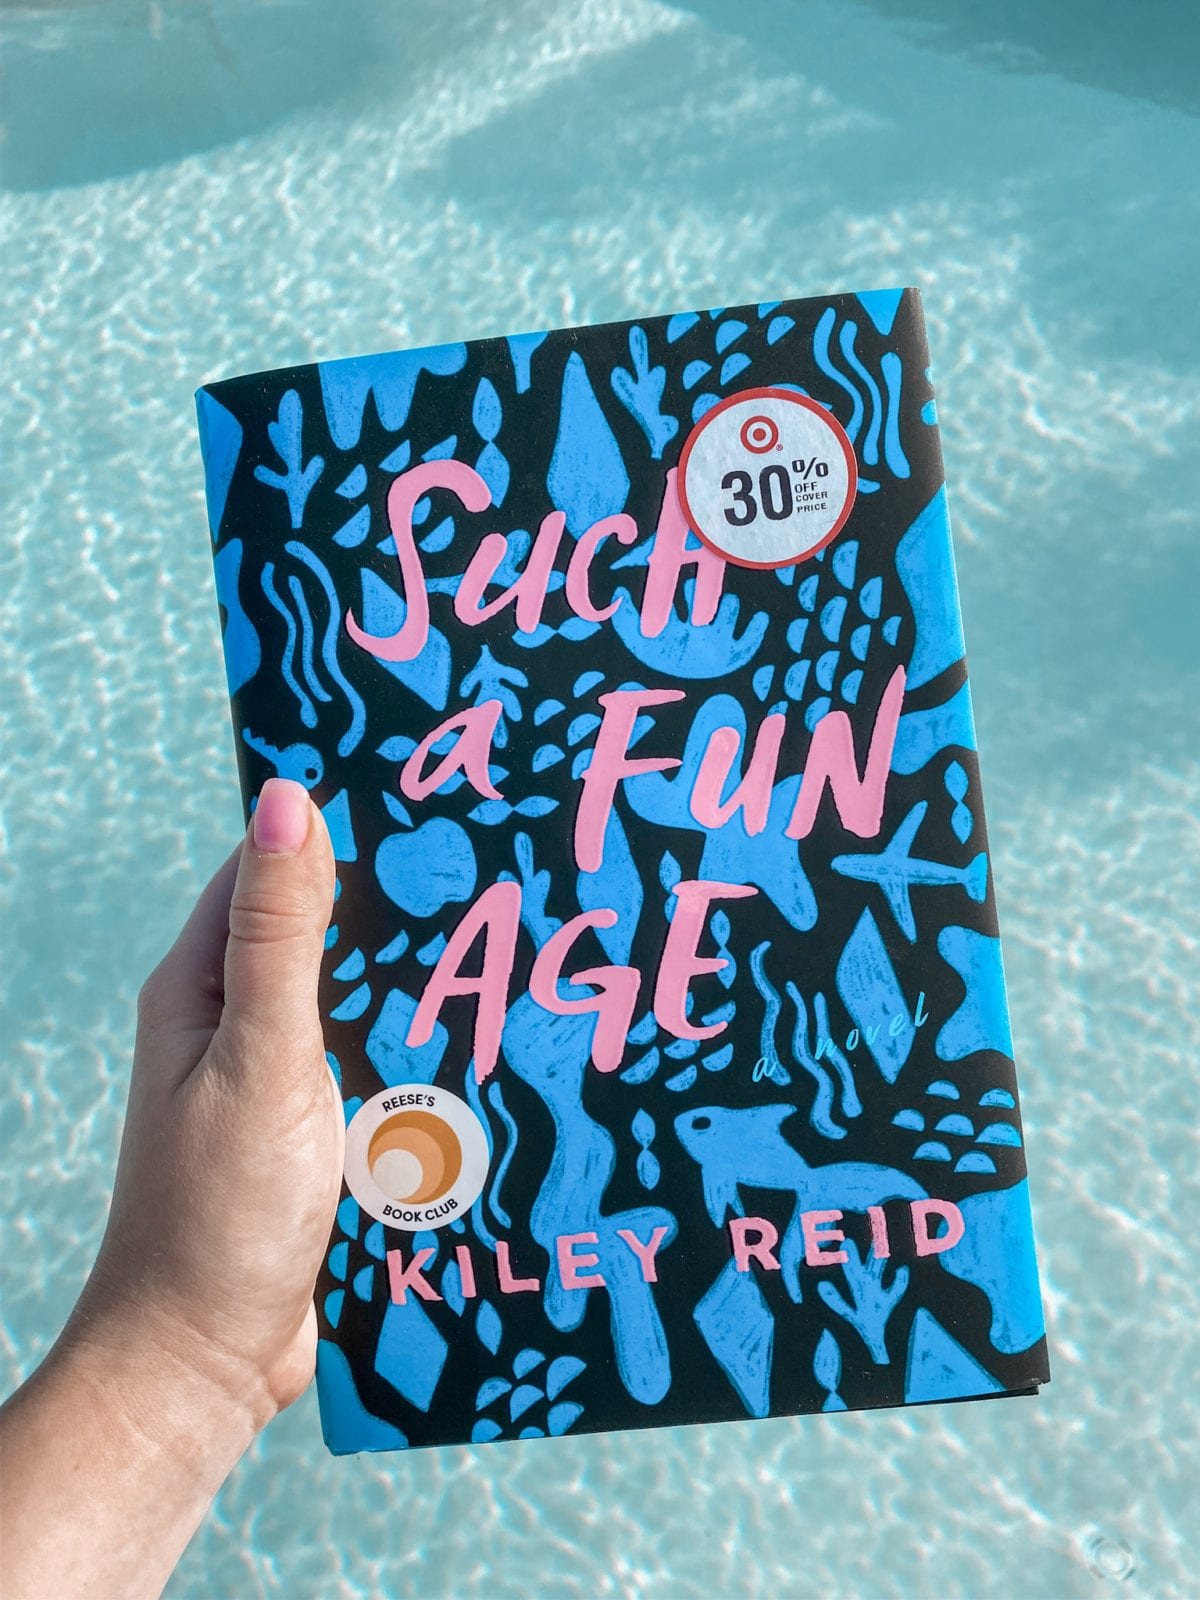 In this image, Haley is sharing one of the books she plans to read in February called, Such a Fun Age by Kiley Reid. The title is very vibrant with bluefish, keys, airplanes, and pink font.